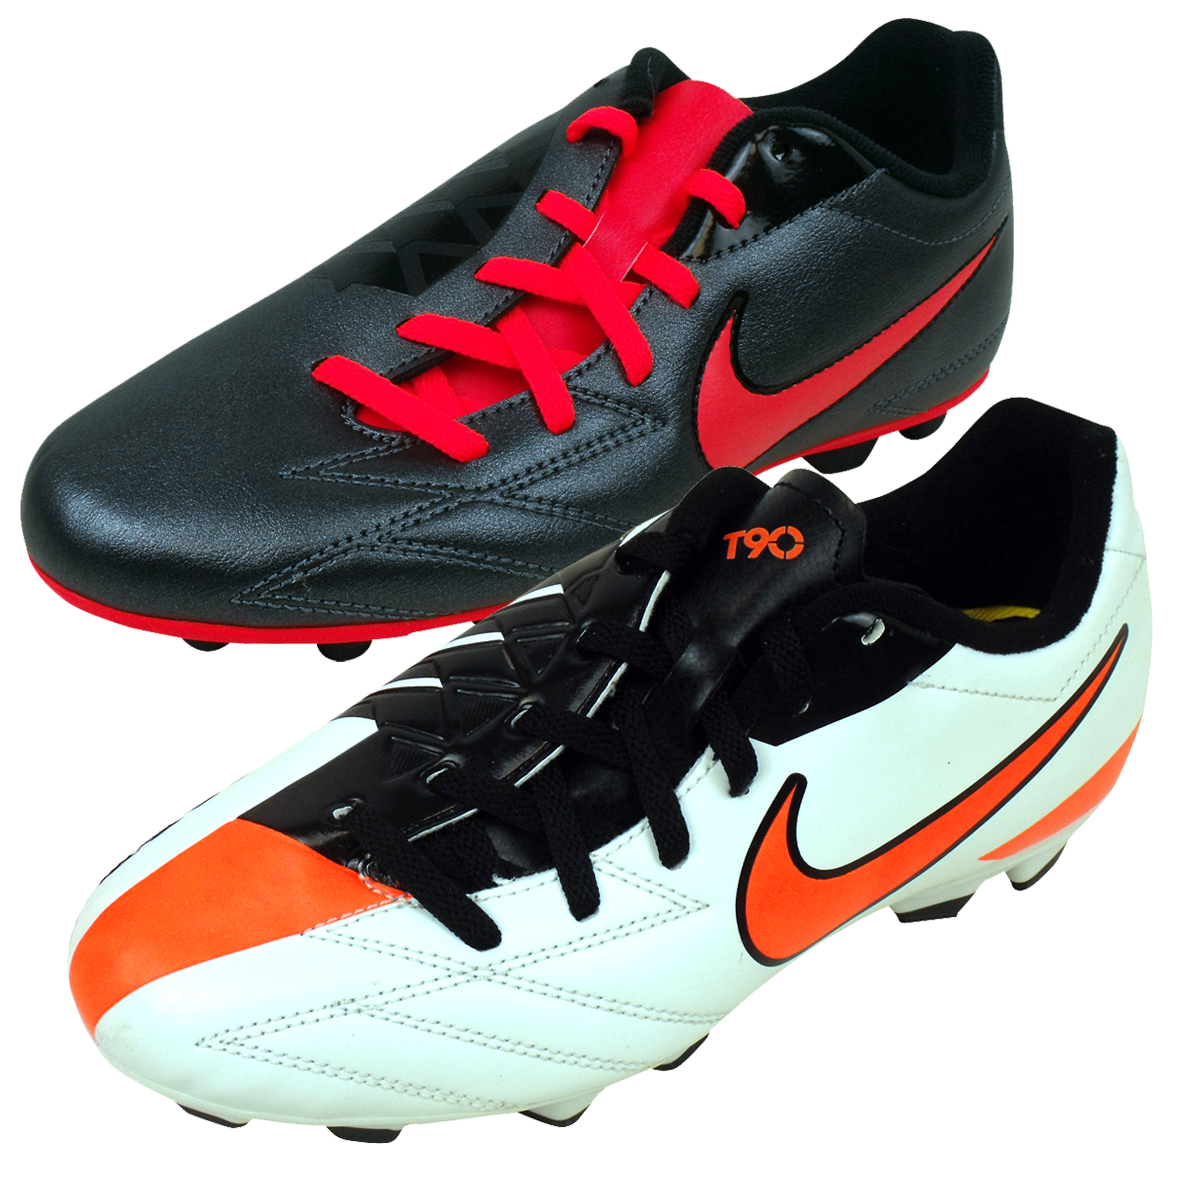 Boys-Nike-Total-90-FG-Firm-Ground-Football-Boots-Junior-Sizes-Kids-Size-UK-10-6